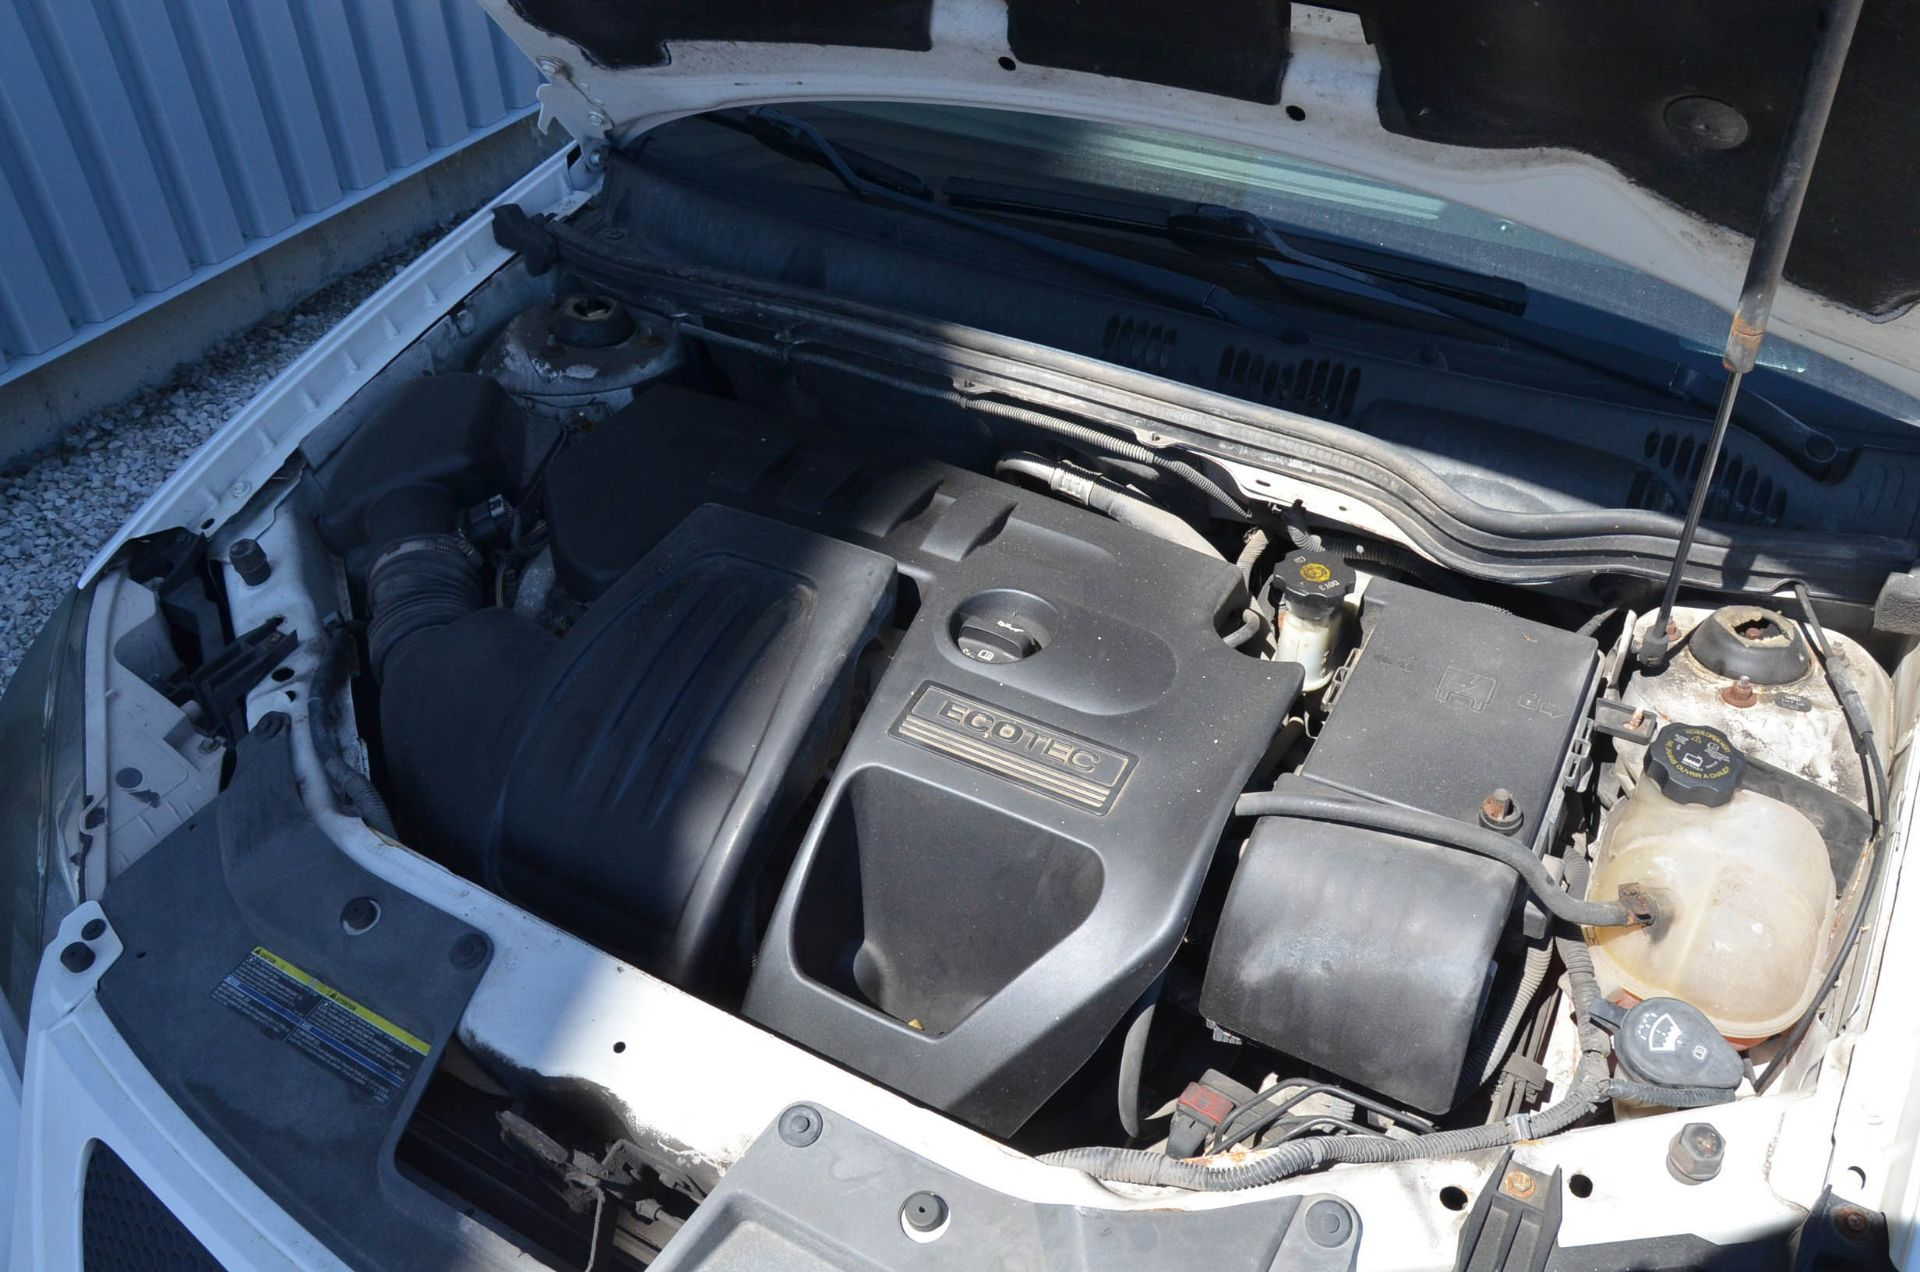 PONTIAC (2008) G5 4-DOOR SEDAN, AUTO, APPROX. 192,000 KM (RECORDED ON METER AT THE TIME OF LISTING), - Image 9 of 9